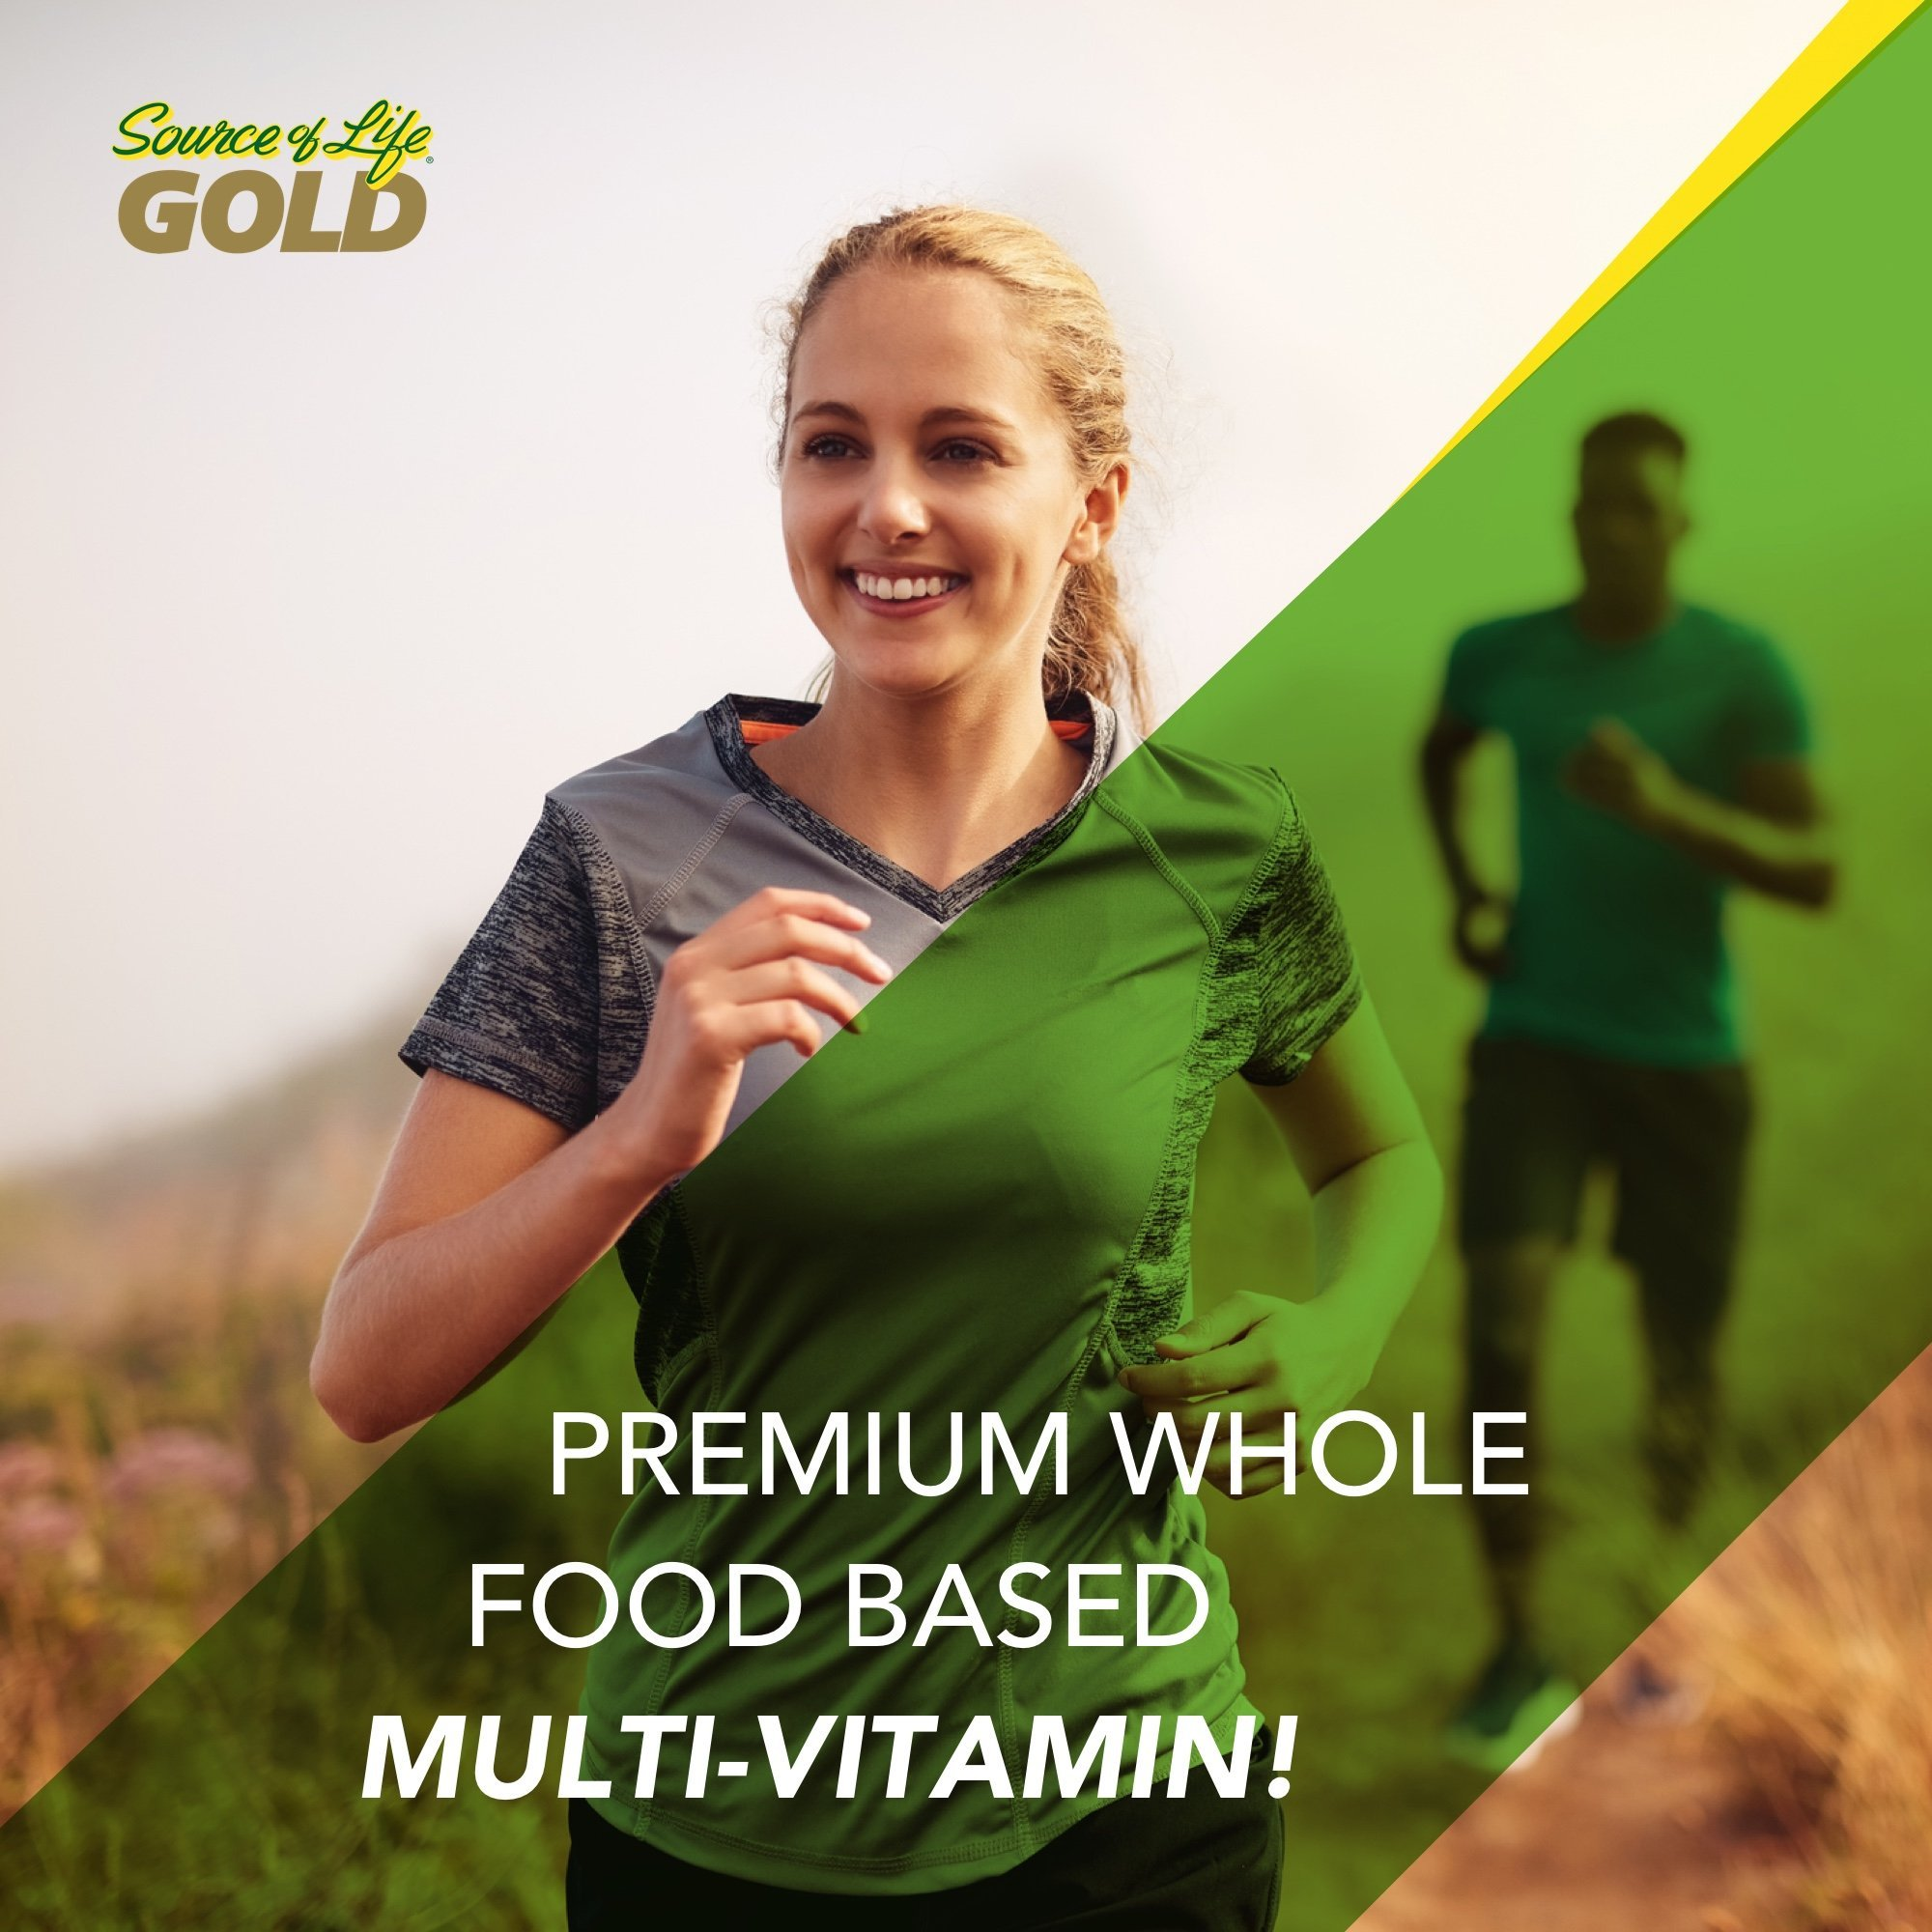 Natures Plus Source of Life Gold - 180 Vegetarian Tablets - Daily High Potency Antioxidant and Anti-Aging Whole Food Multivitamin Supplement, Energy Booster - Gluten Free - 60 Servings by Nature's Plus (Image #4)